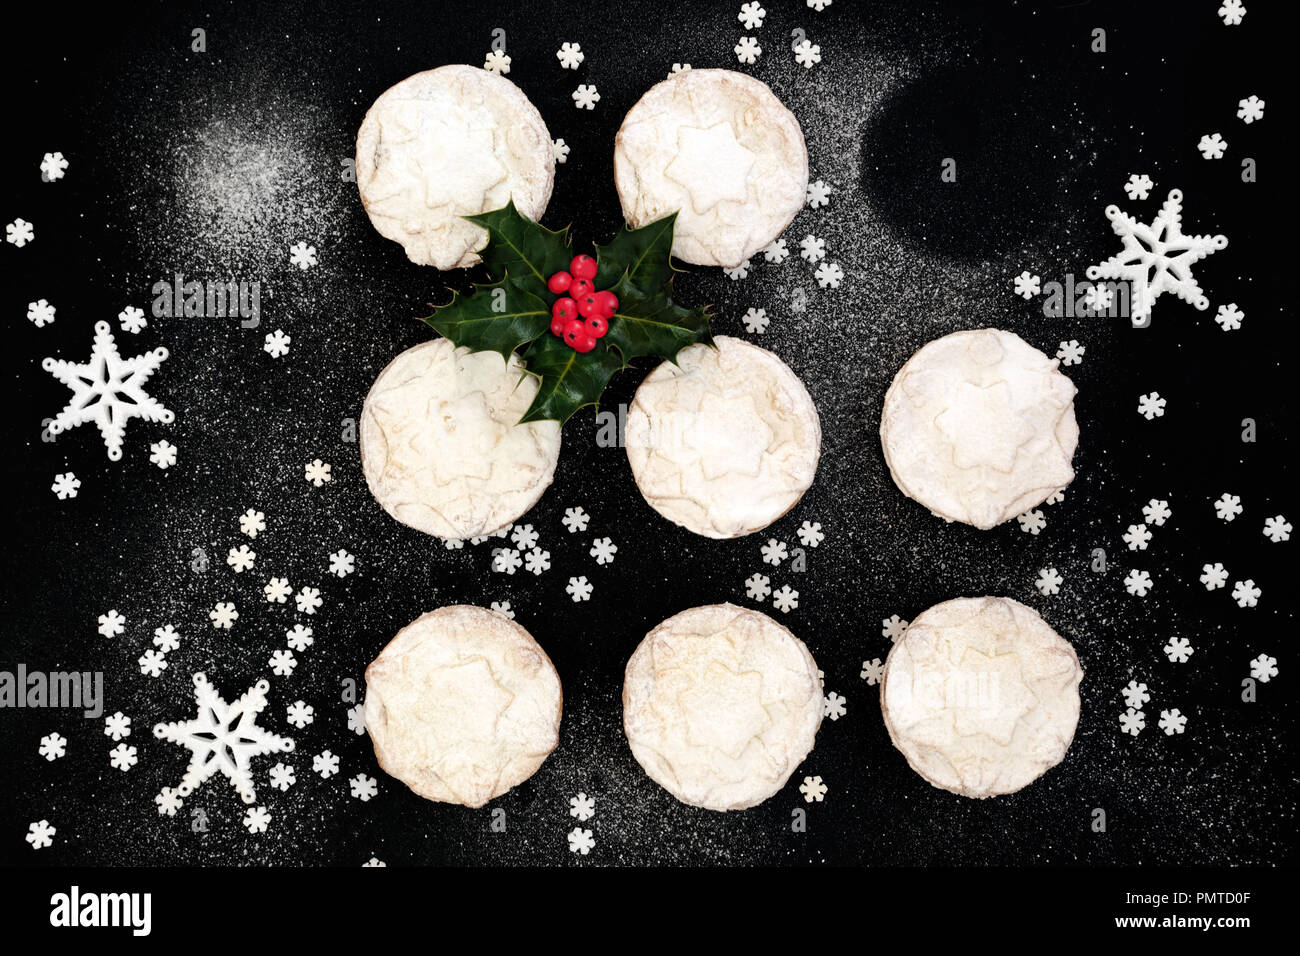 Delicious freshly baked Christmas mince pies with one missing, holly berry leaf sprig, star decorations and icing sugar dusting on black background. T - Stock Image